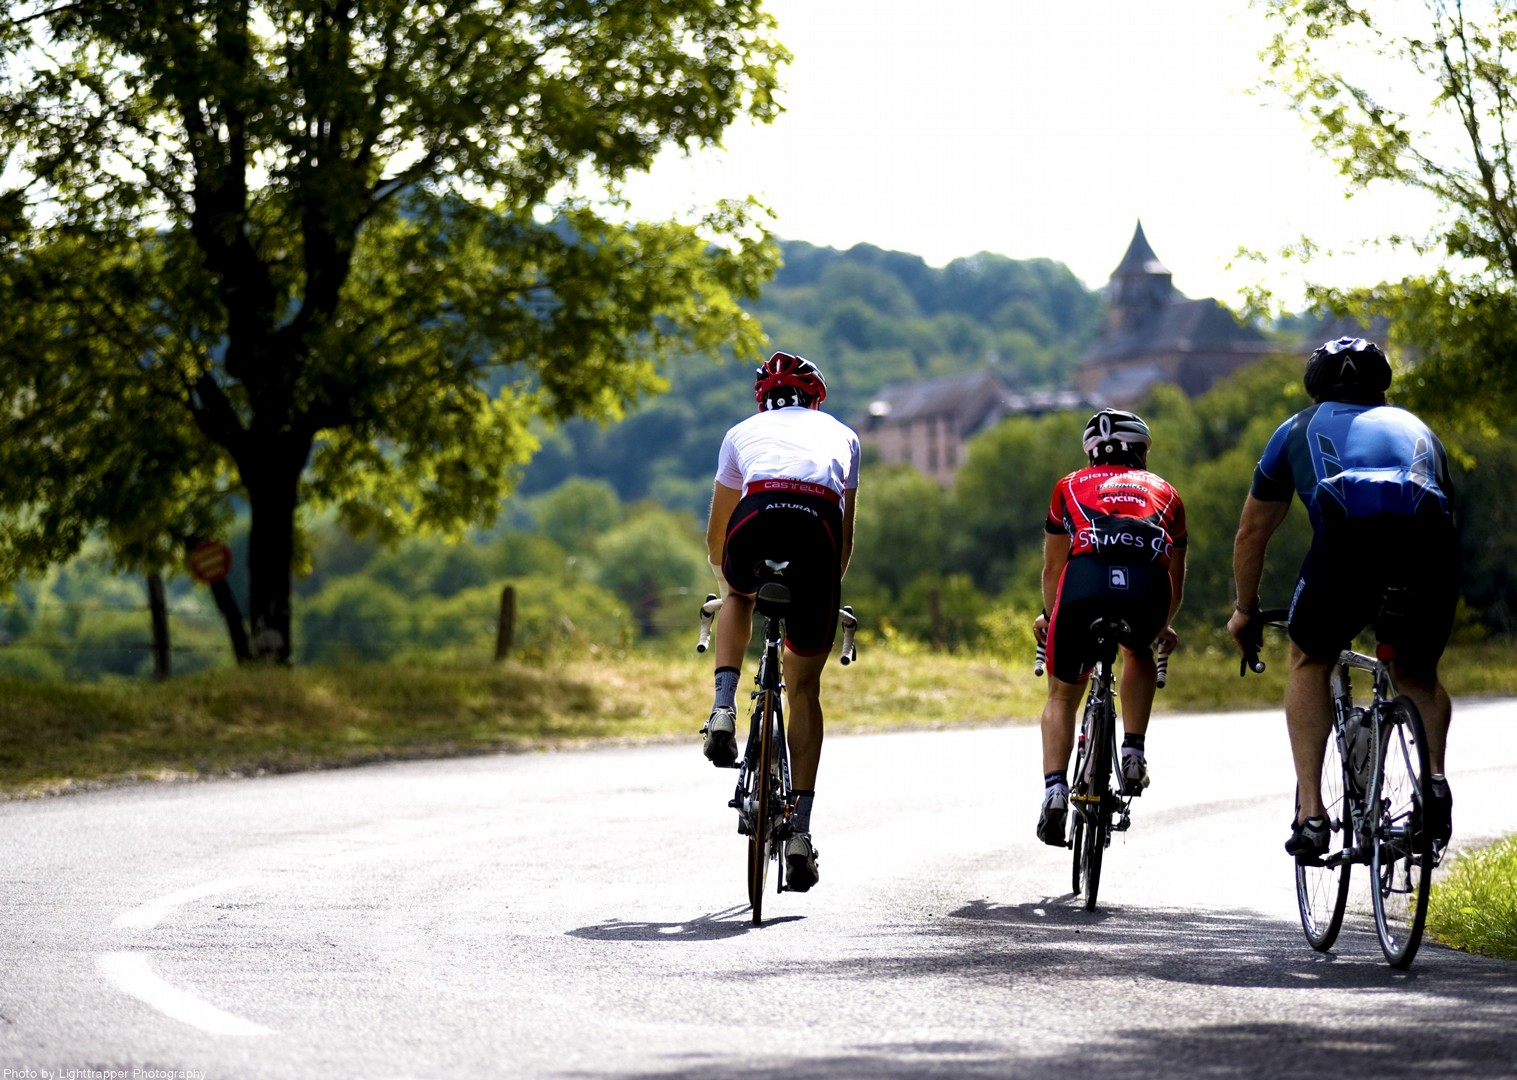 group-guided-road-bike-tour-france-vineyards.jpg - France - Alsace, Burgundy and Beaujolais - Guided Road Cycling Holiday - Road Cycling